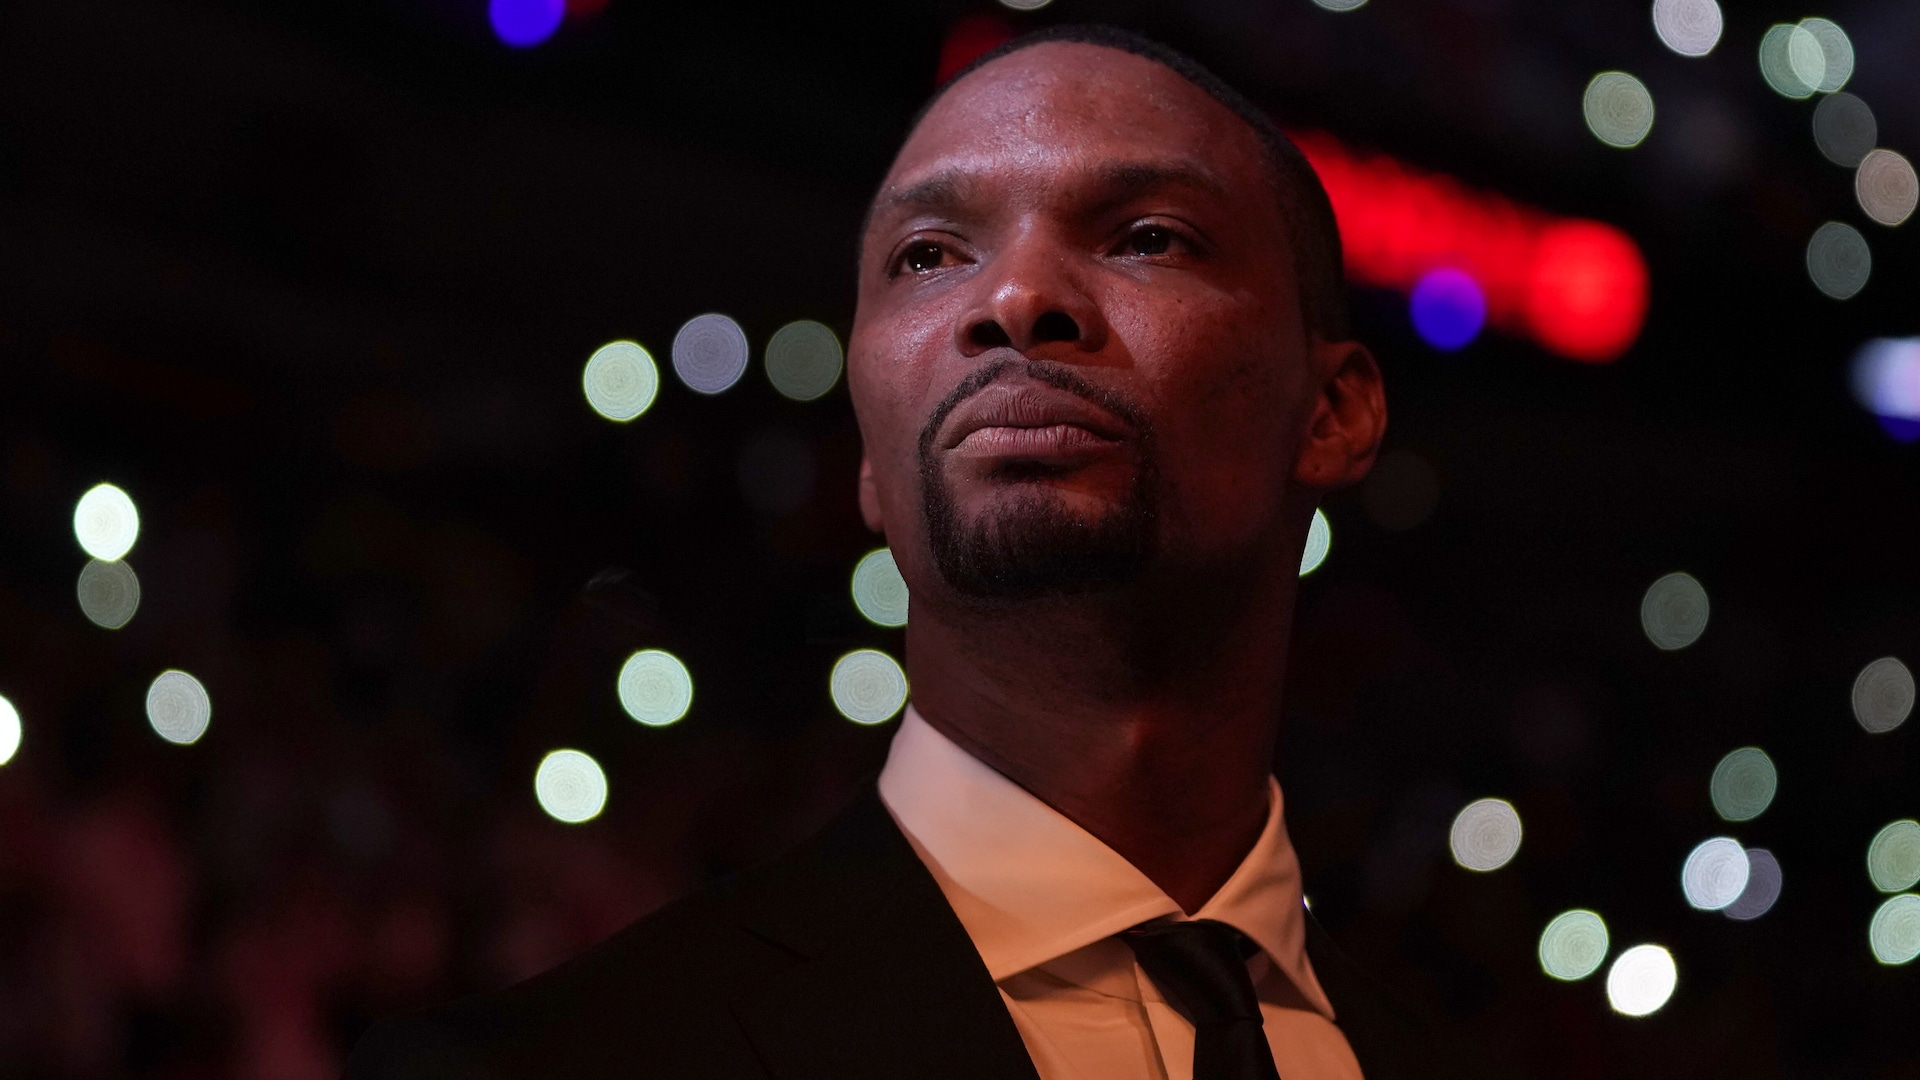 Chris Bosh disappointed in not being 2020 Hall of Fame finalist